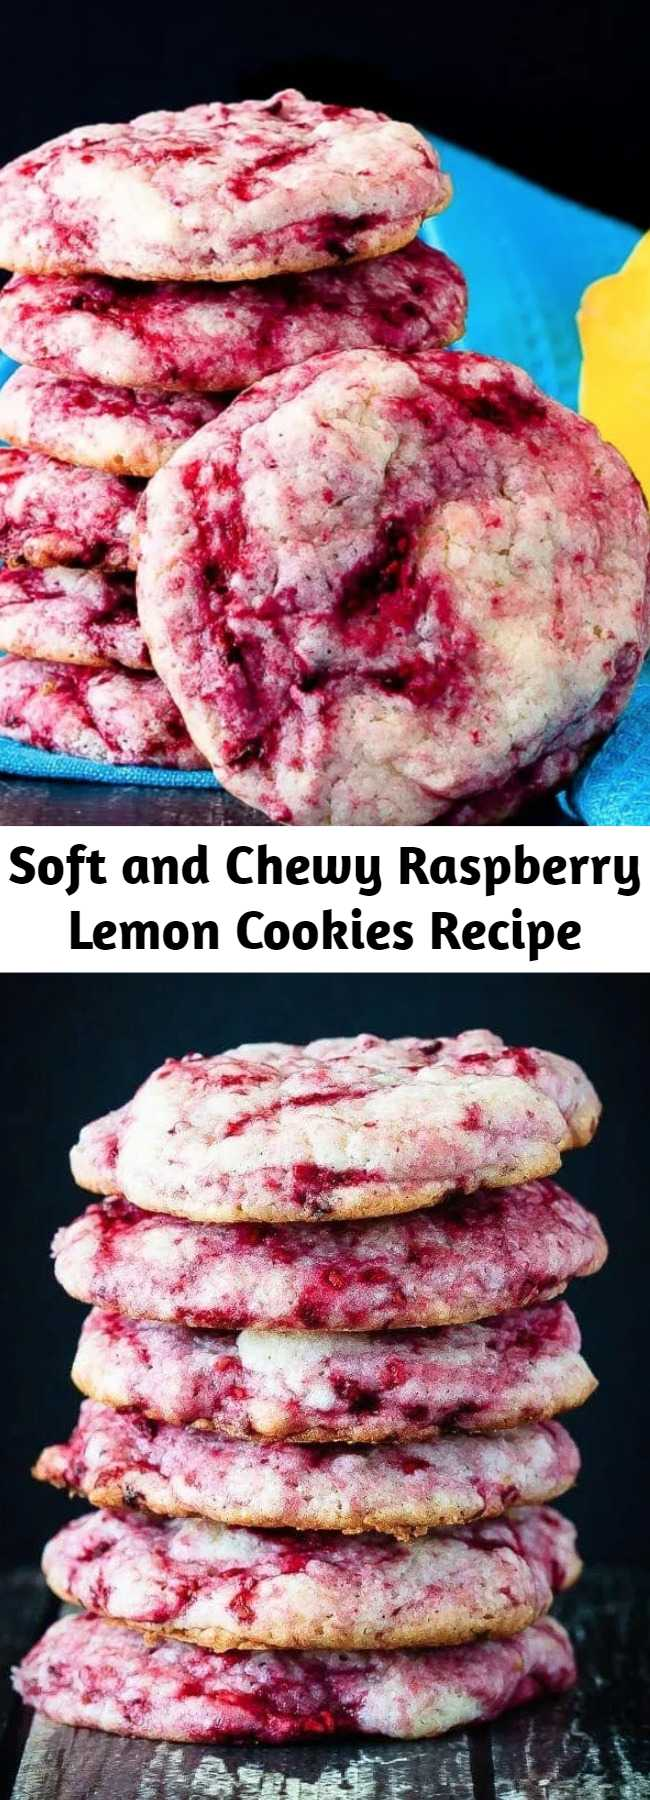 Soft and Chewy Raspberry Lemon Cookies Recipe - These raspberry lemon cookies are ultra soft and chewy - quick and easy to make and so tasty everyone loves them. One of the best cookies I've made!